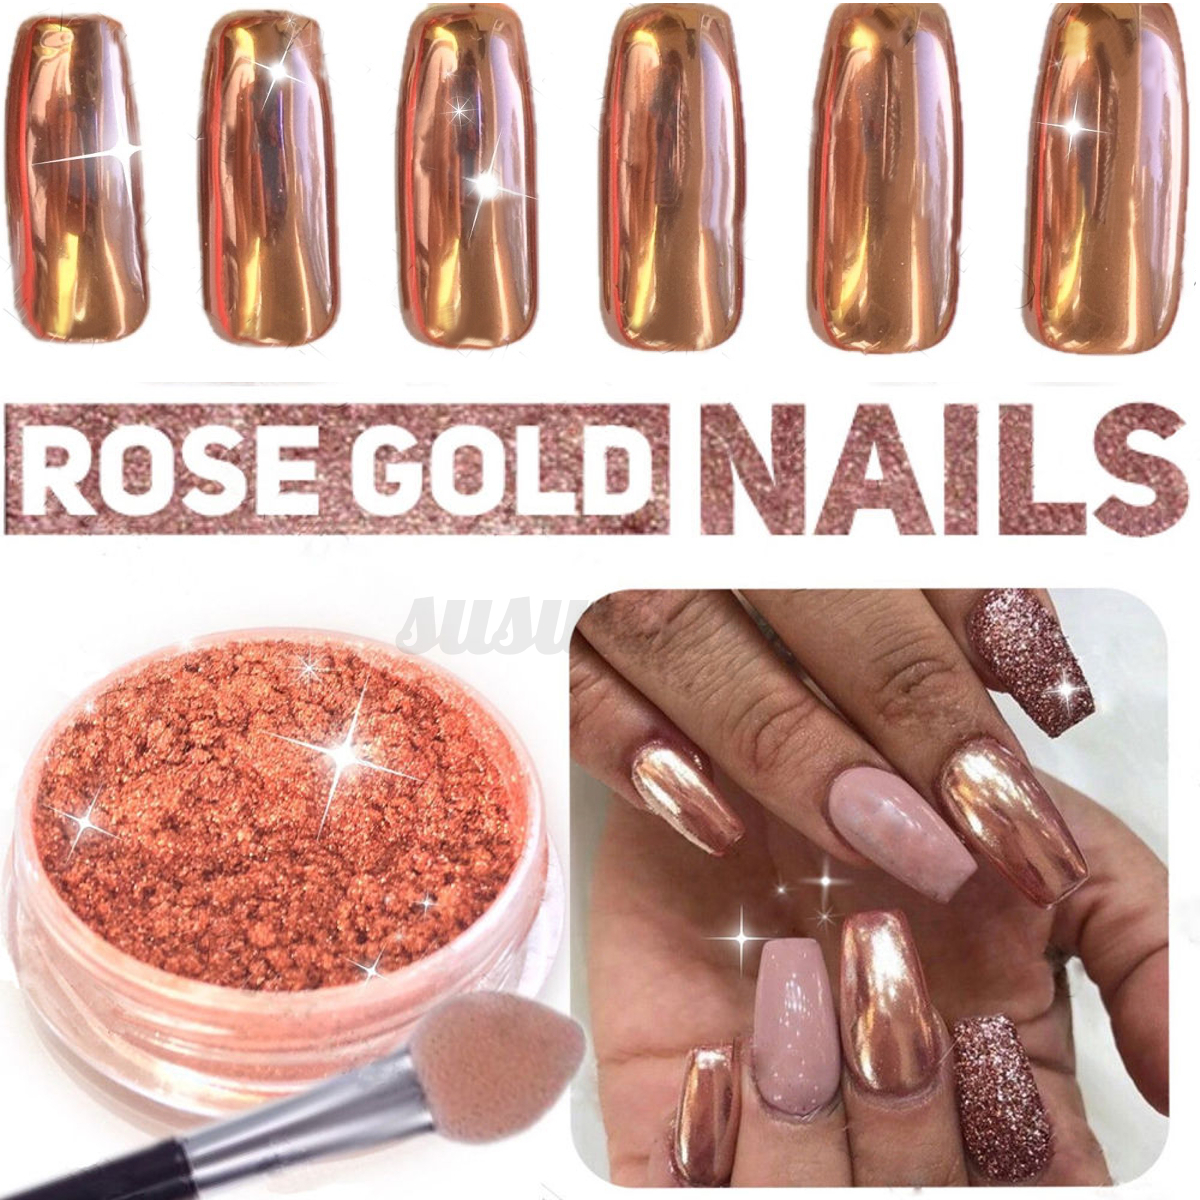 5x rose gold nail mirror powder nails glitter chrome for Decoration maison rose gold